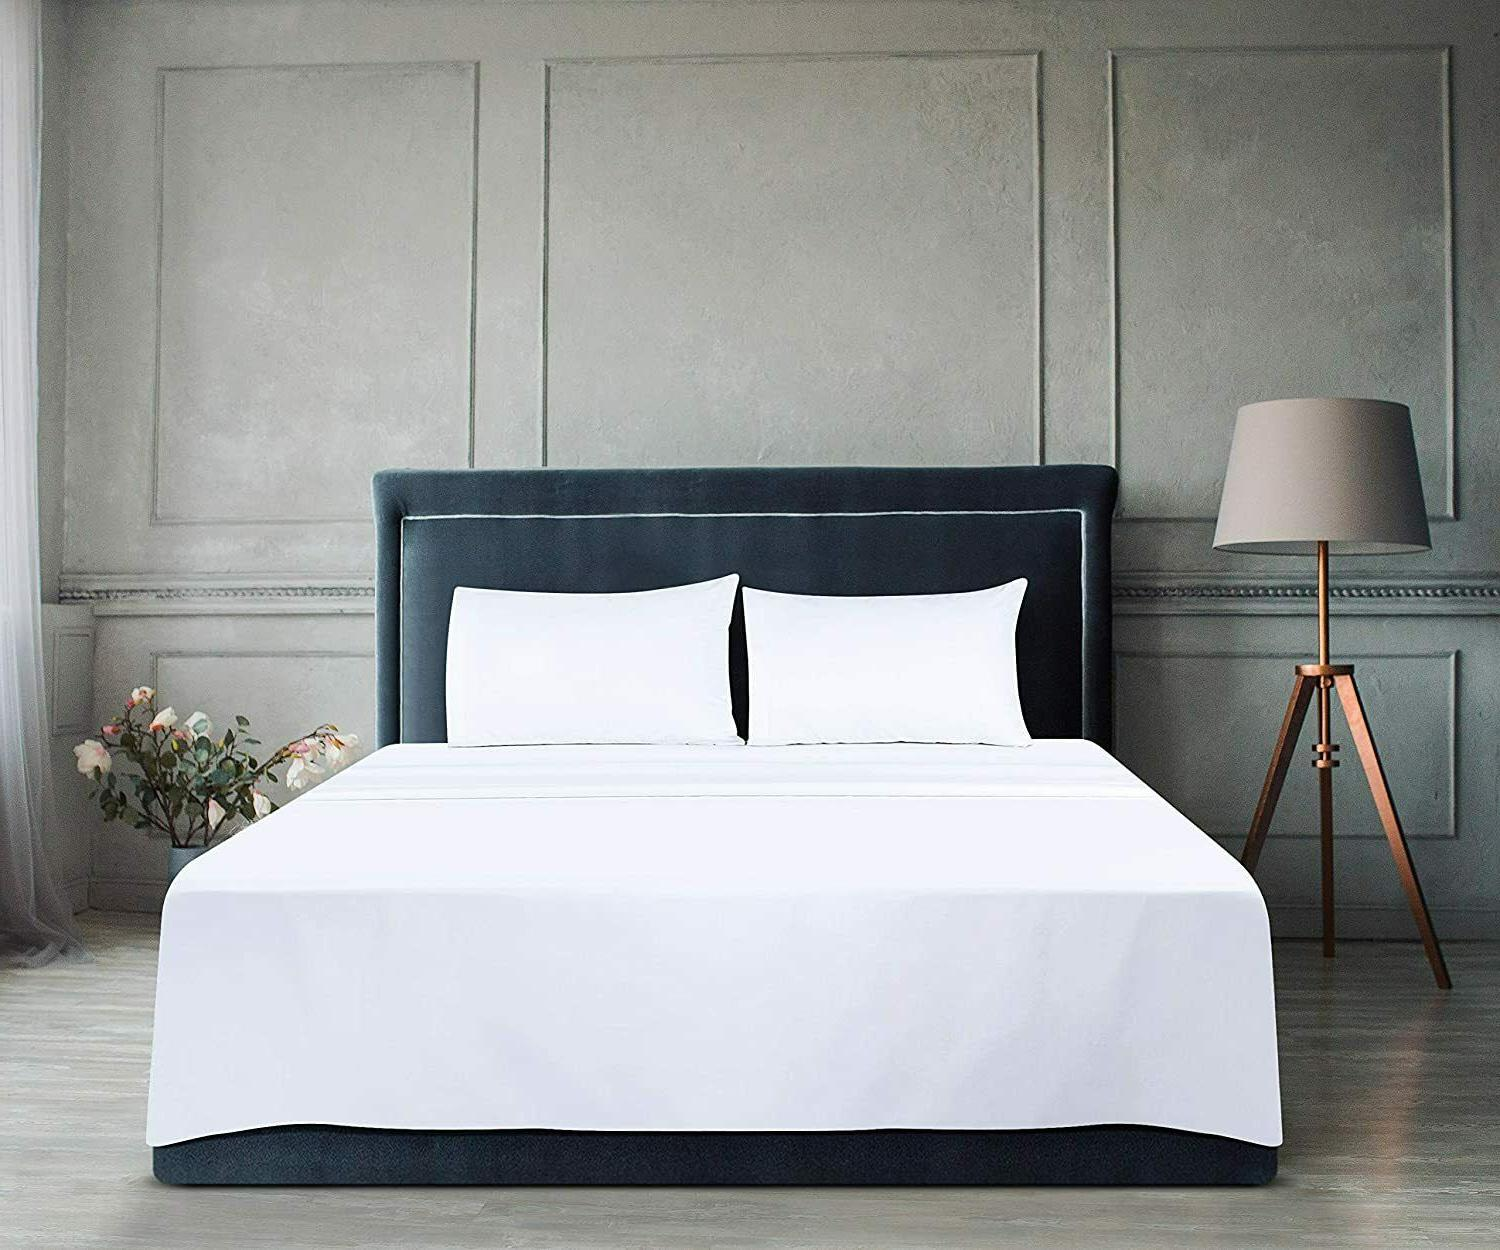 Pack of 6 Sheets Brushed Microfiber Quality in White Bedding